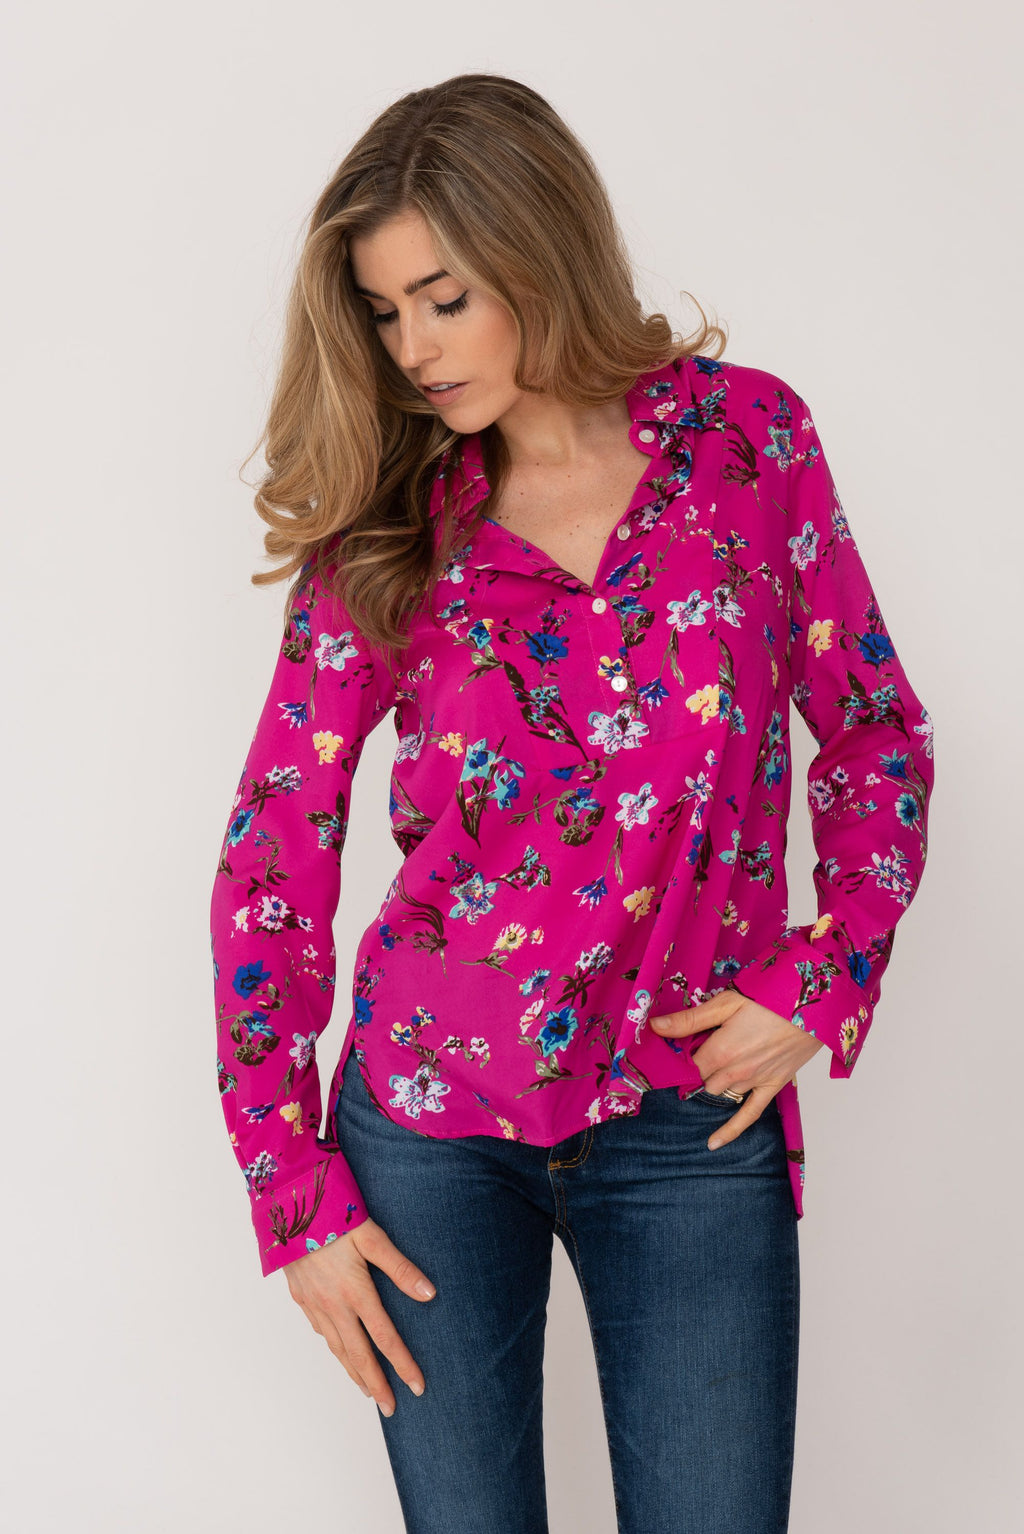 Soho Shirt with Back Detail Hot Pink Flower